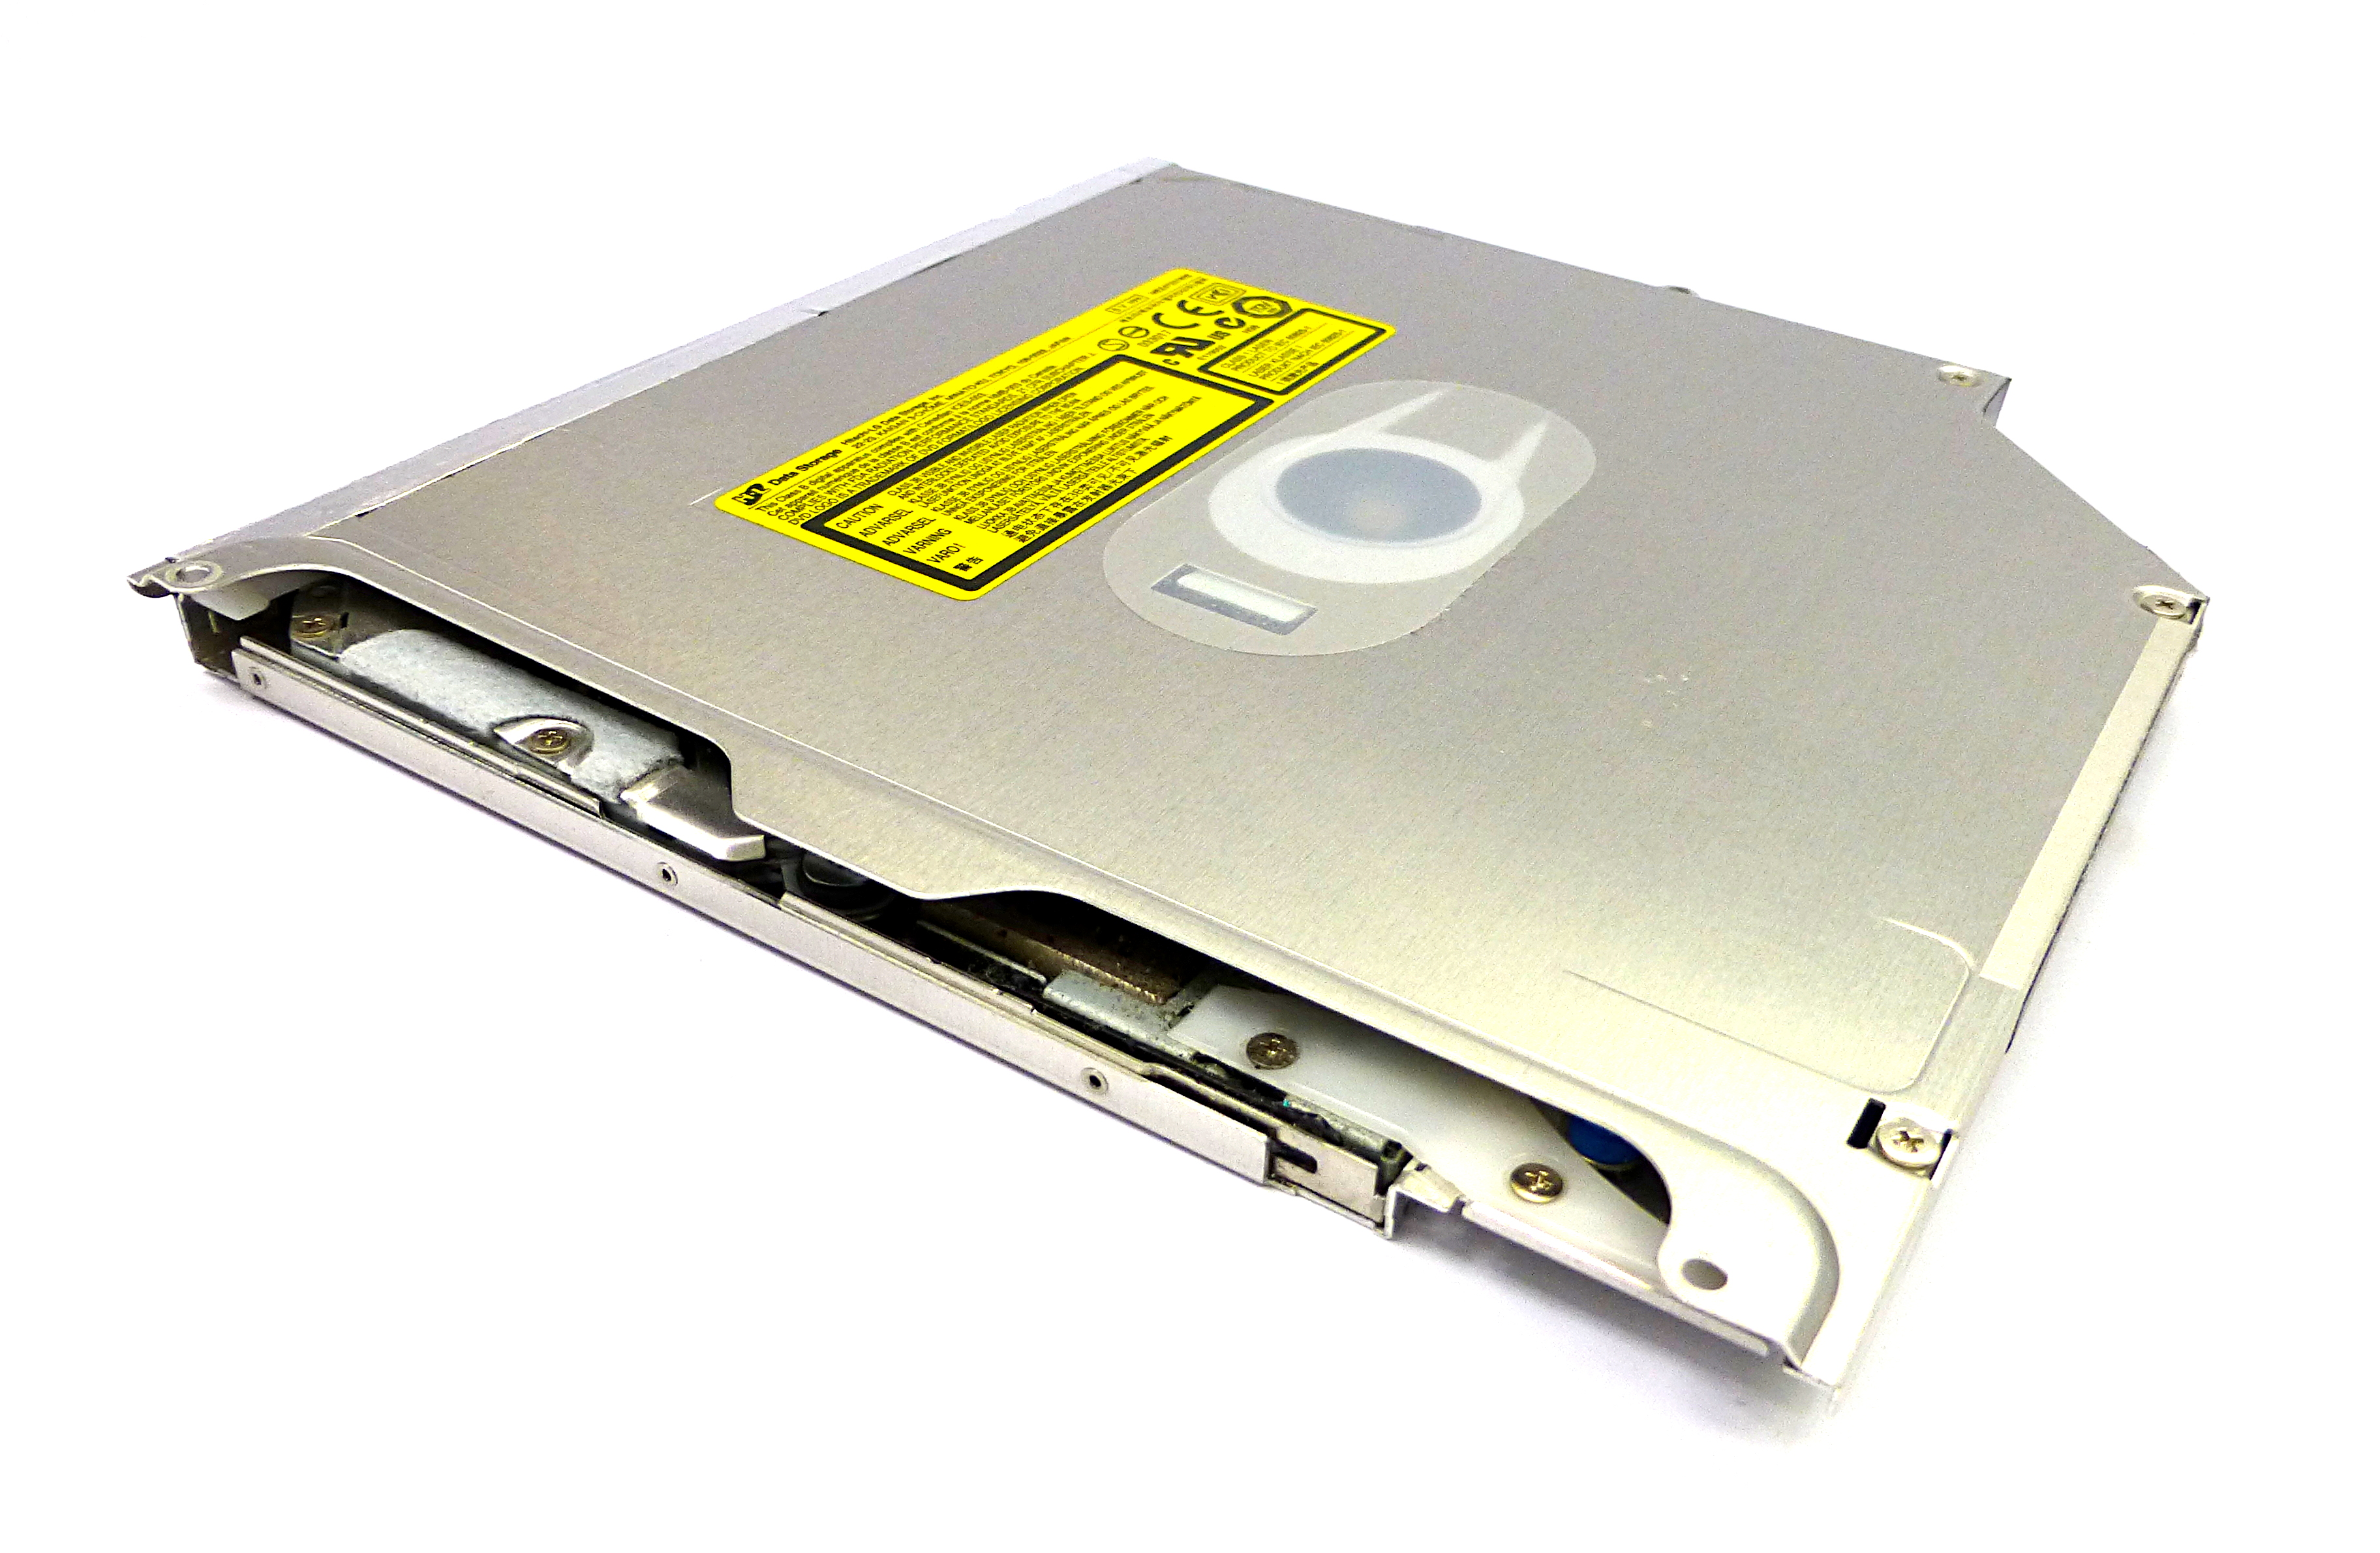 678-0612A Apple MacBook 2.4GHz Core 2 Duo Mid 2010 Super Multi DVD RW - GS31N